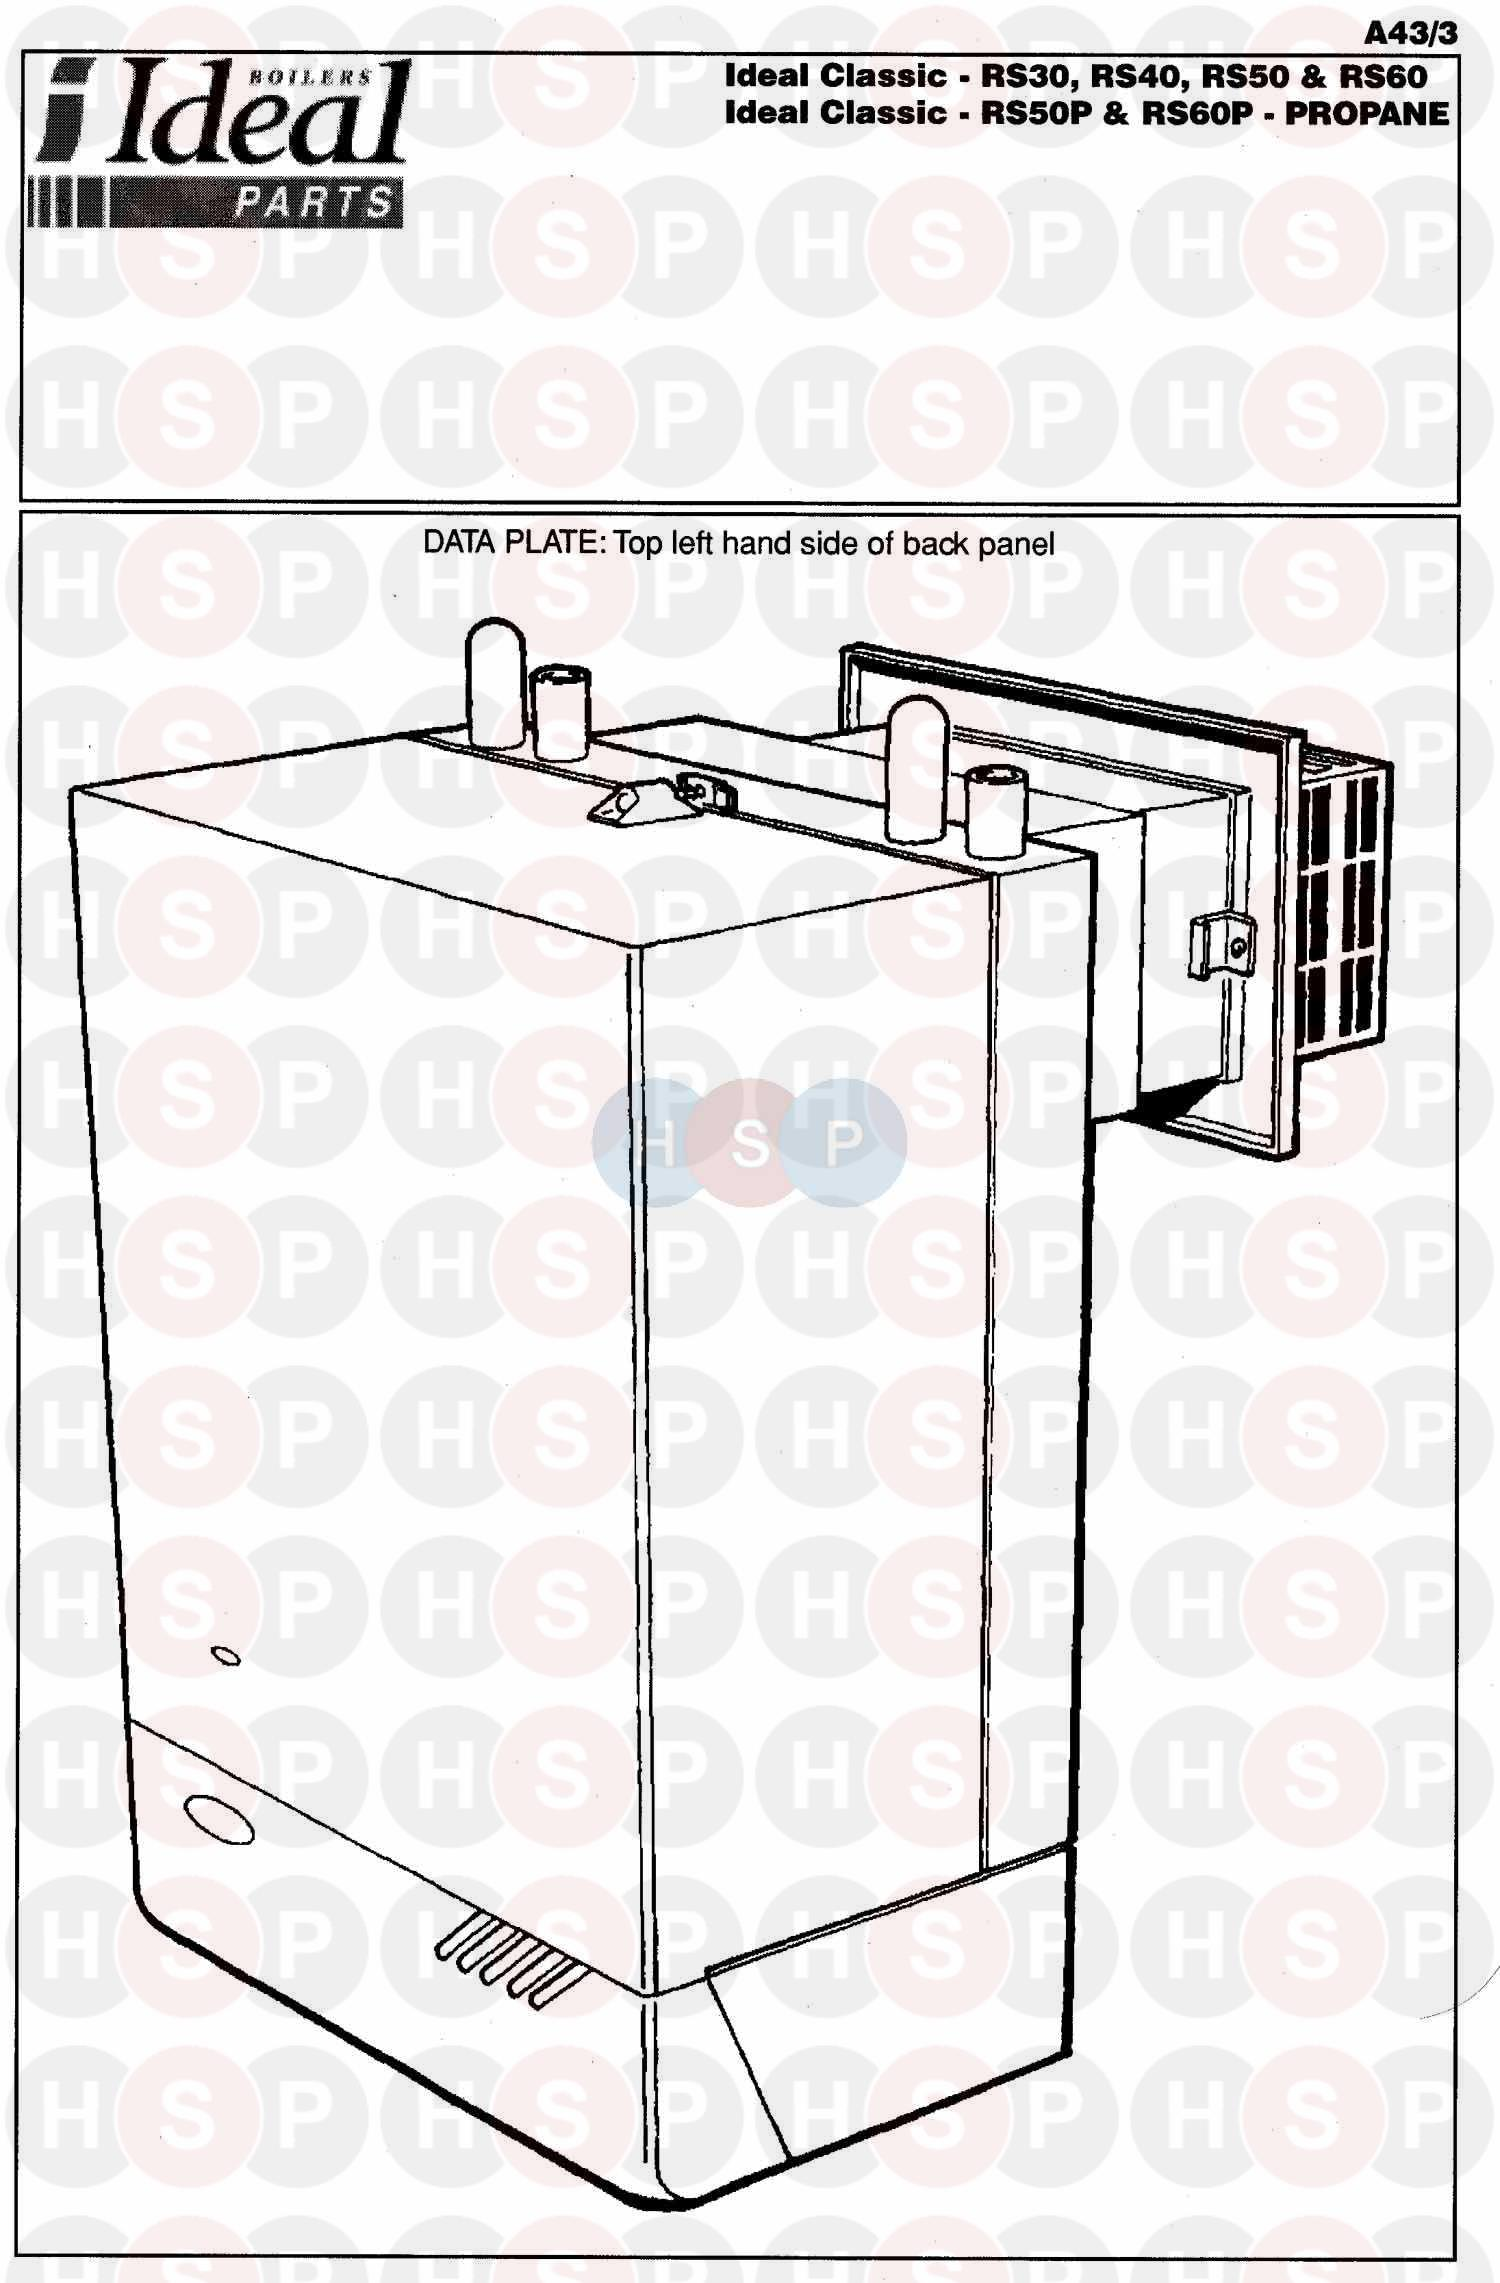 Lennox aggf moreover Wiring Diagram For Richmond Hot Water Heater together with 1985 Rheem Furnace Wiring Diagram also Rheem Furnace Diagram likewise HVAC Manuals Air Conditioners Boilers Furnaces. on ruud thermostat wiring diagram